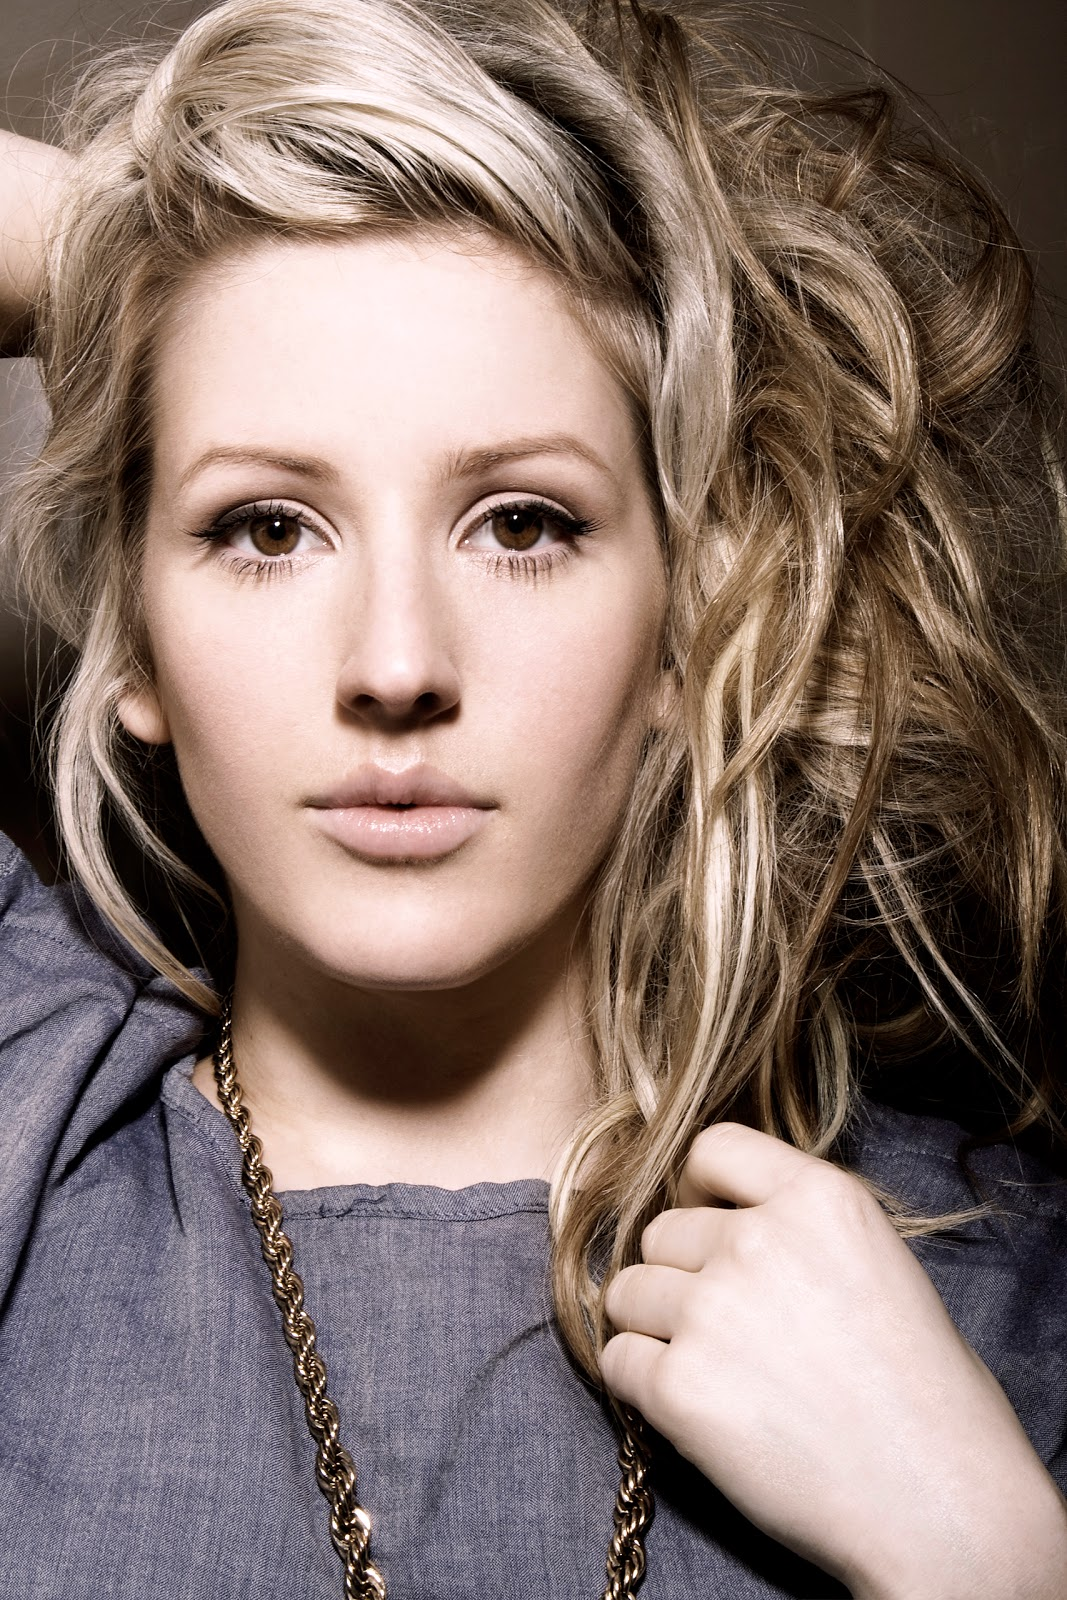 Read Ellie Goulding Biography , See Ellie Goulding Wallpapers